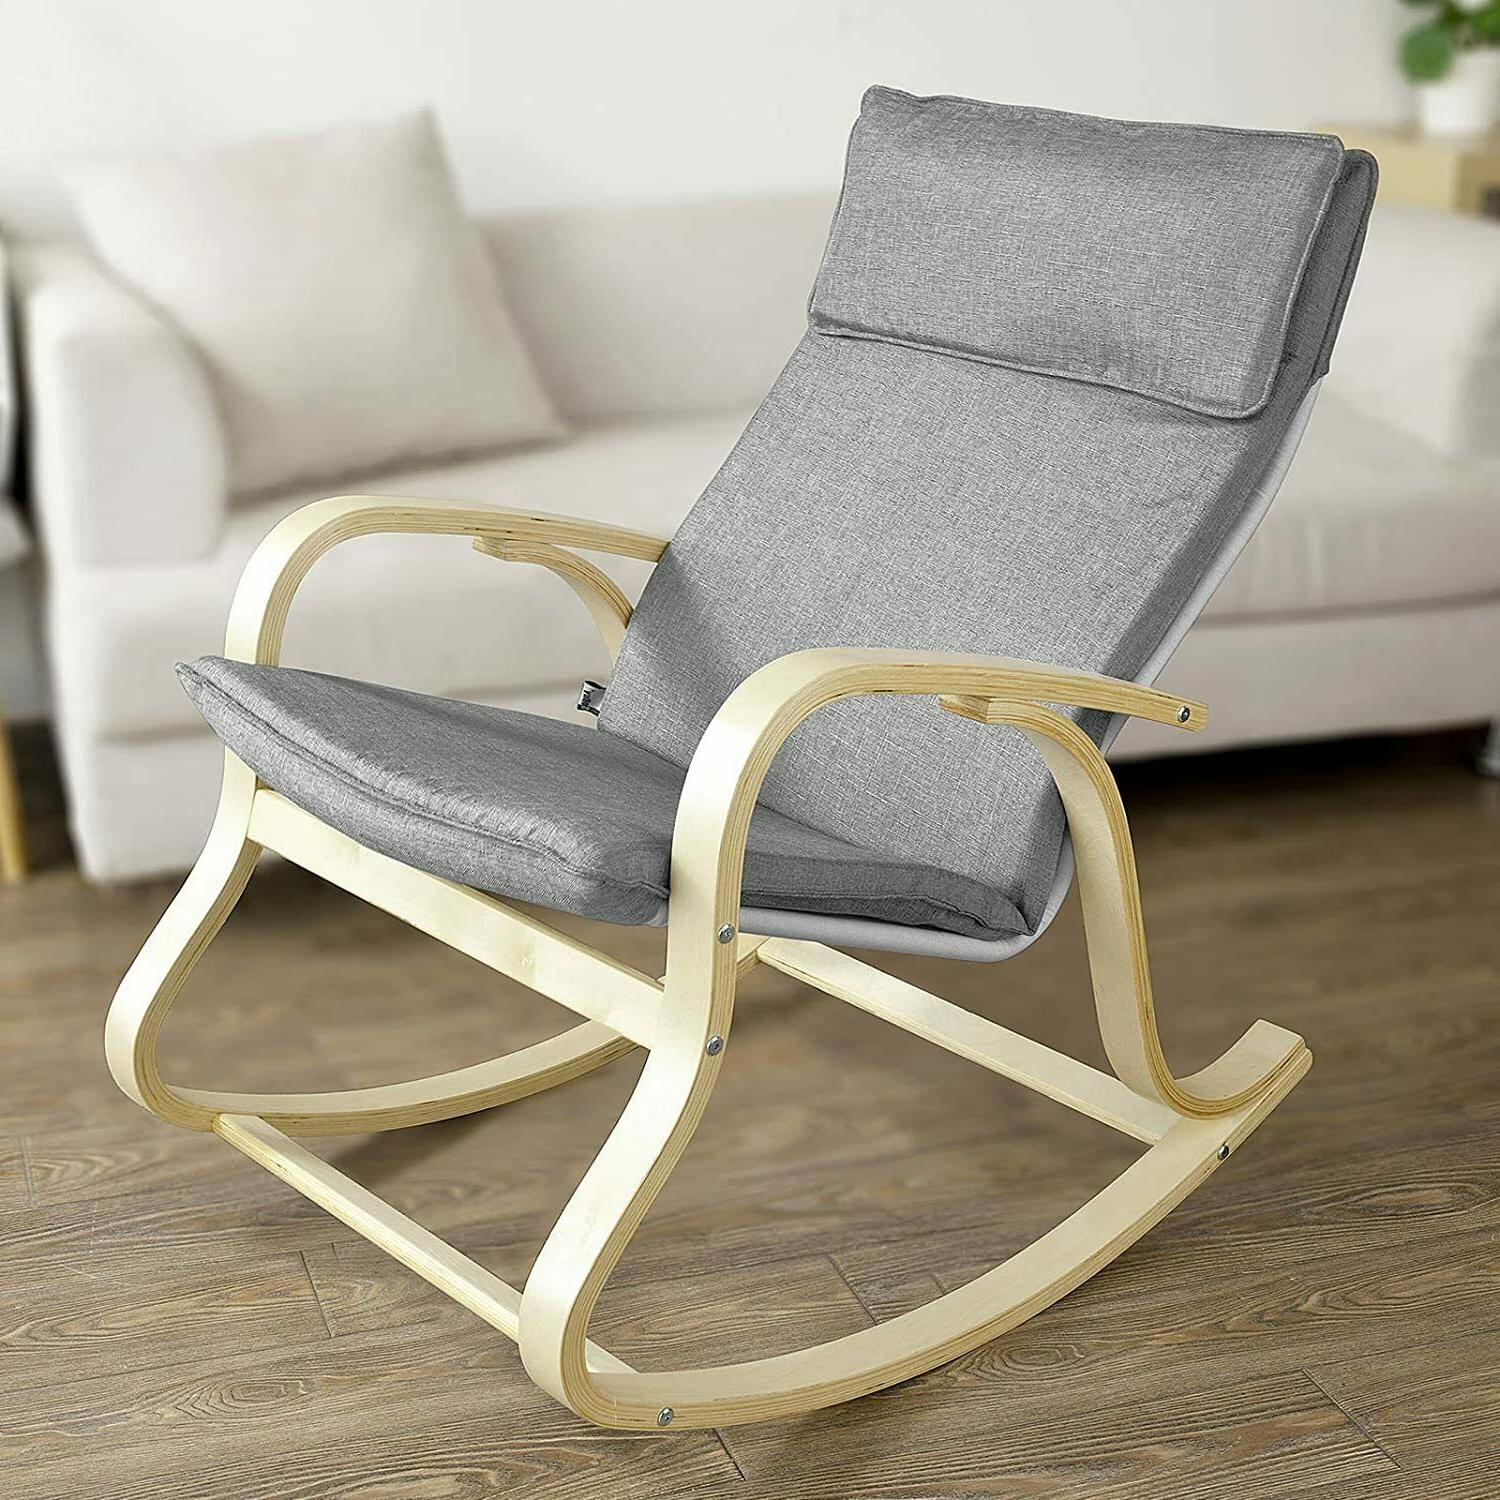 Wood Baby Rocker Seat Rest Relax